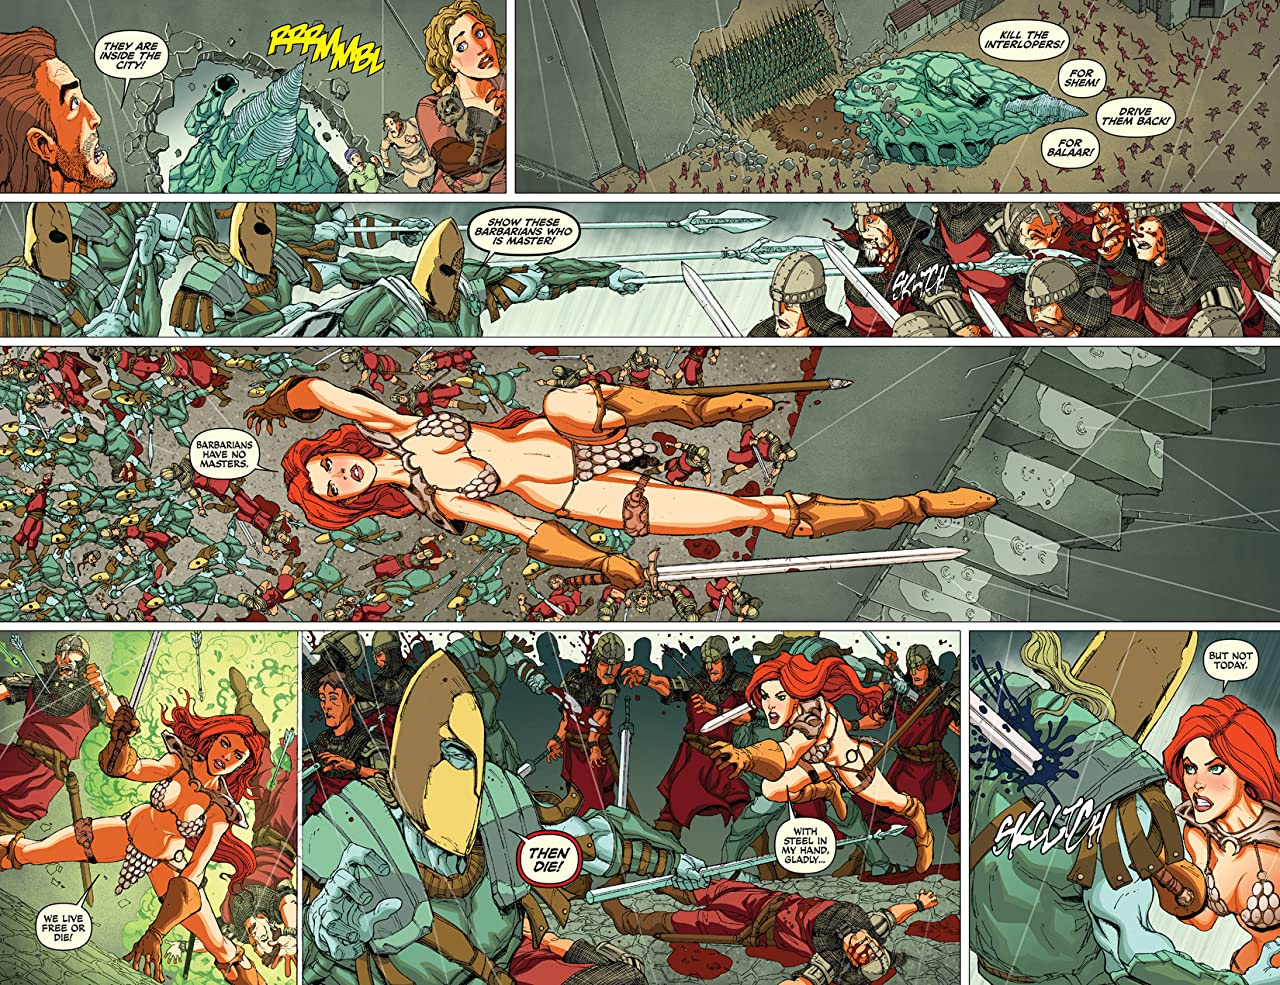 Red Sonja: Atlantis Rises #2